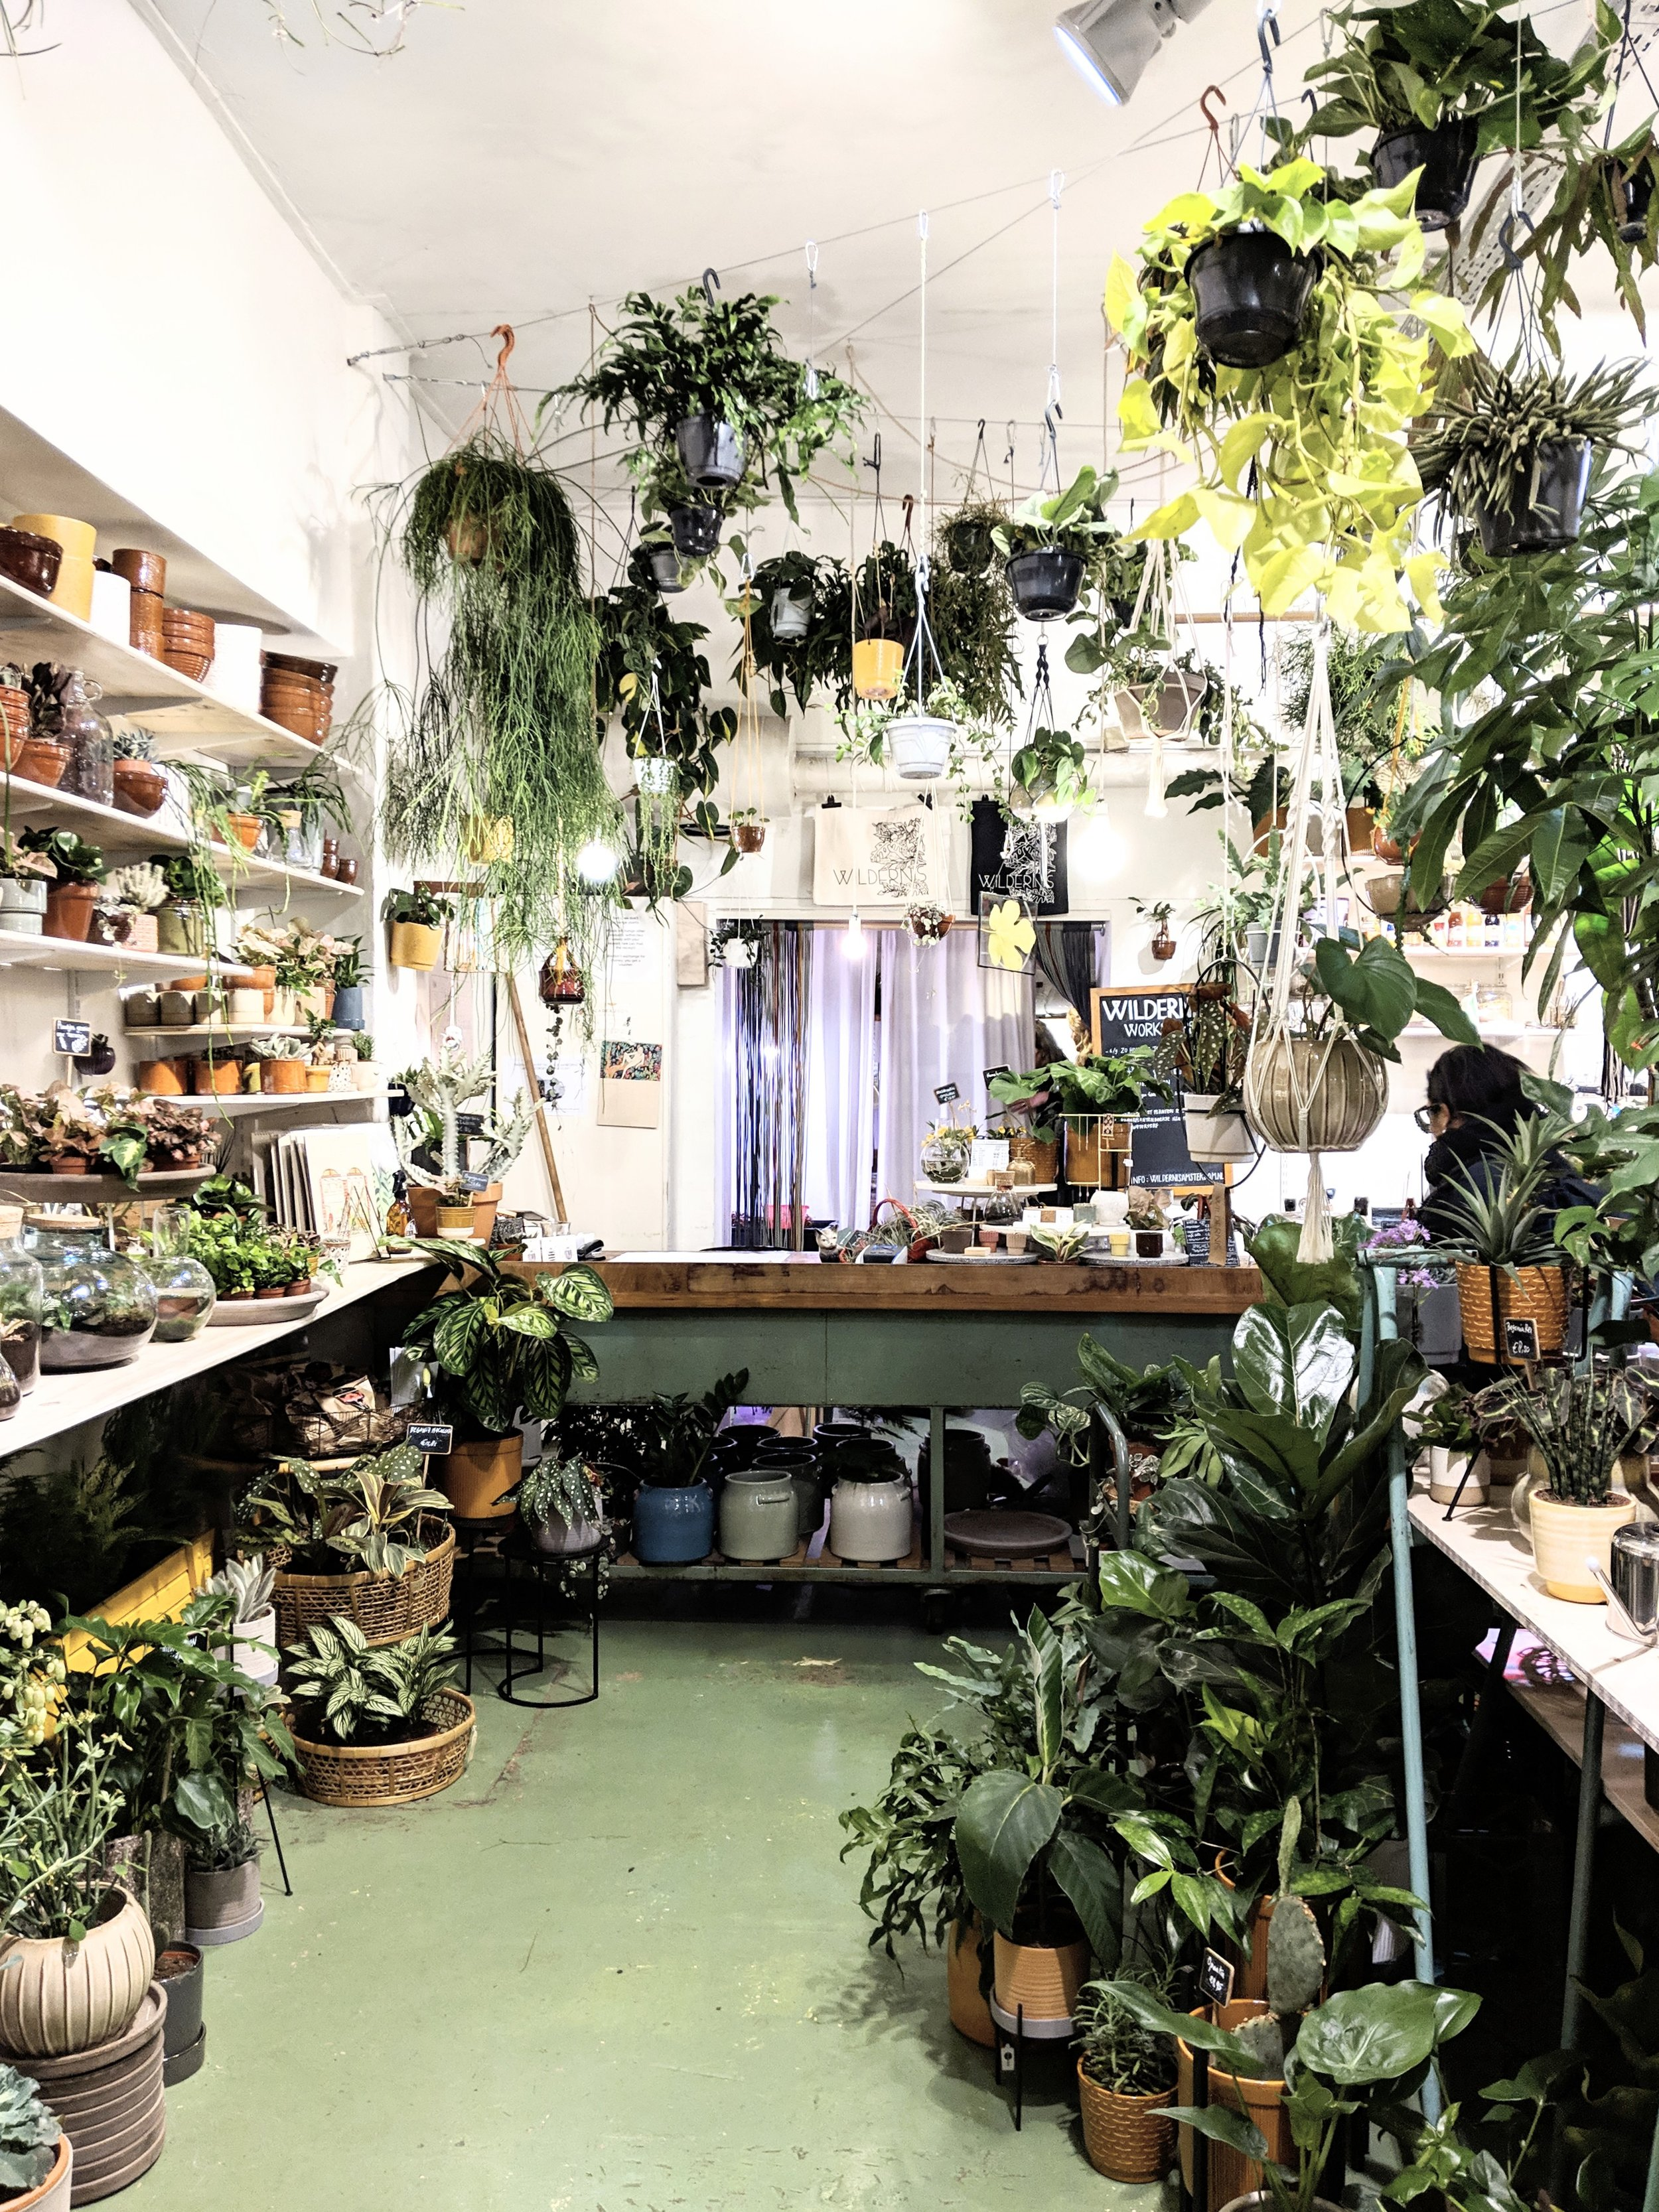 Wildernis Amsterdam  - Image by peastyle